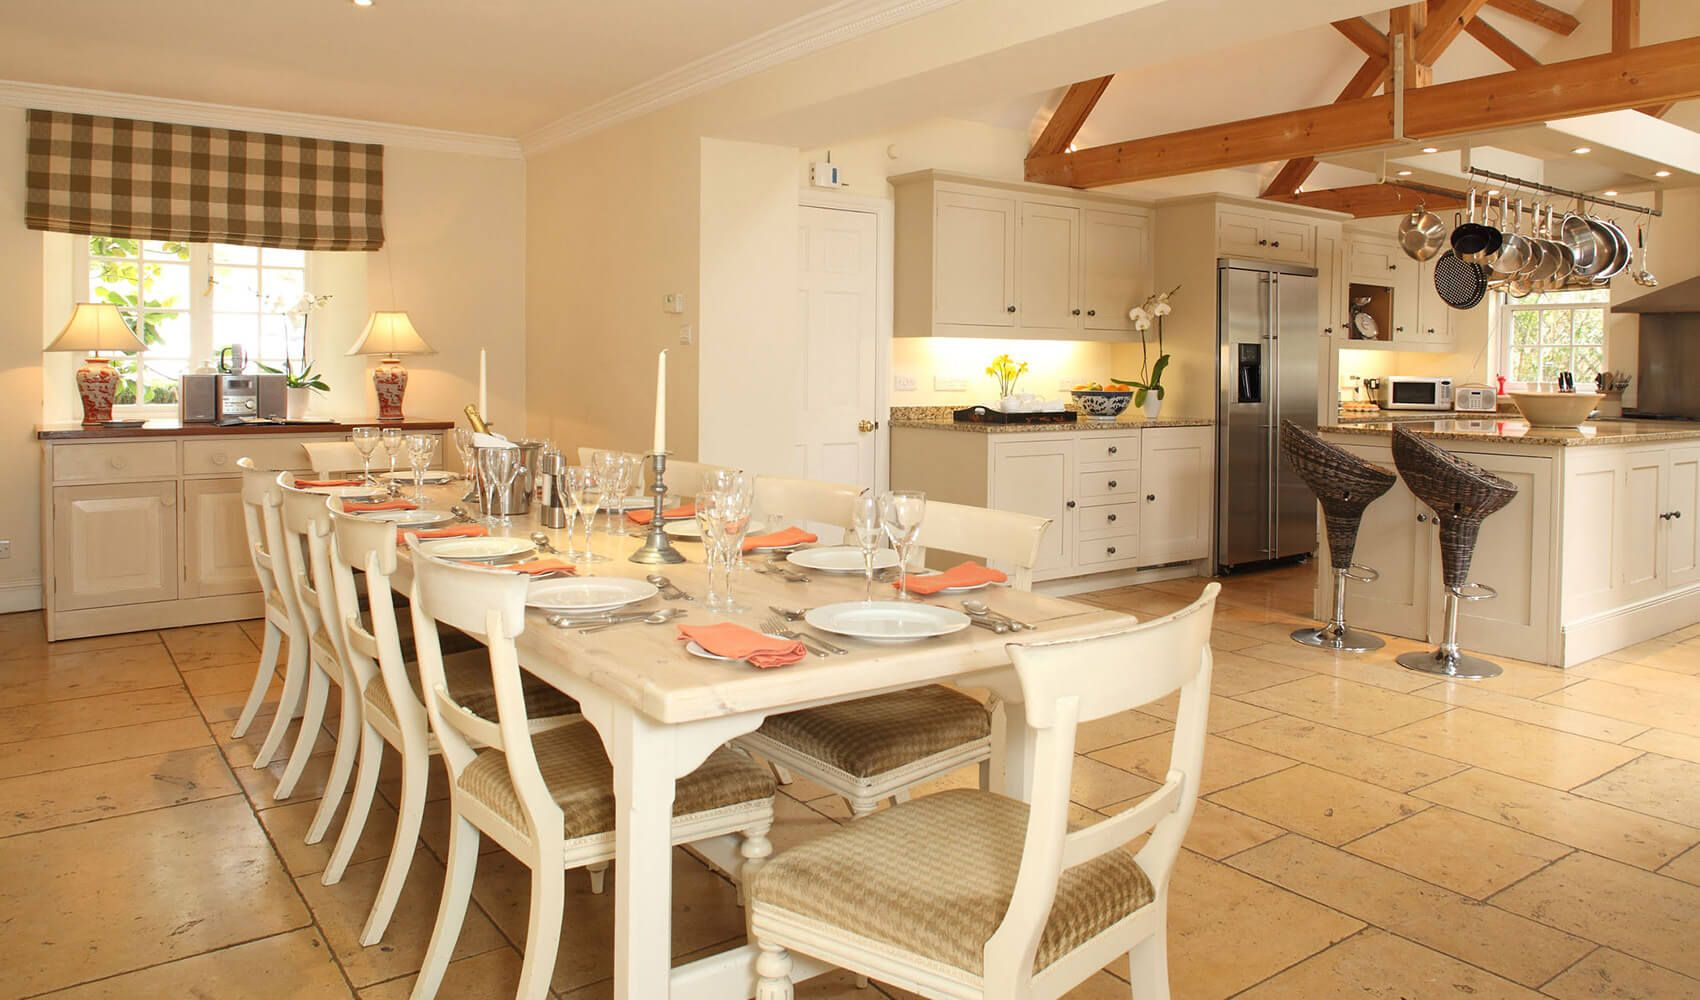 Ground floor: Large fully equipped open plan kitchen/dining room